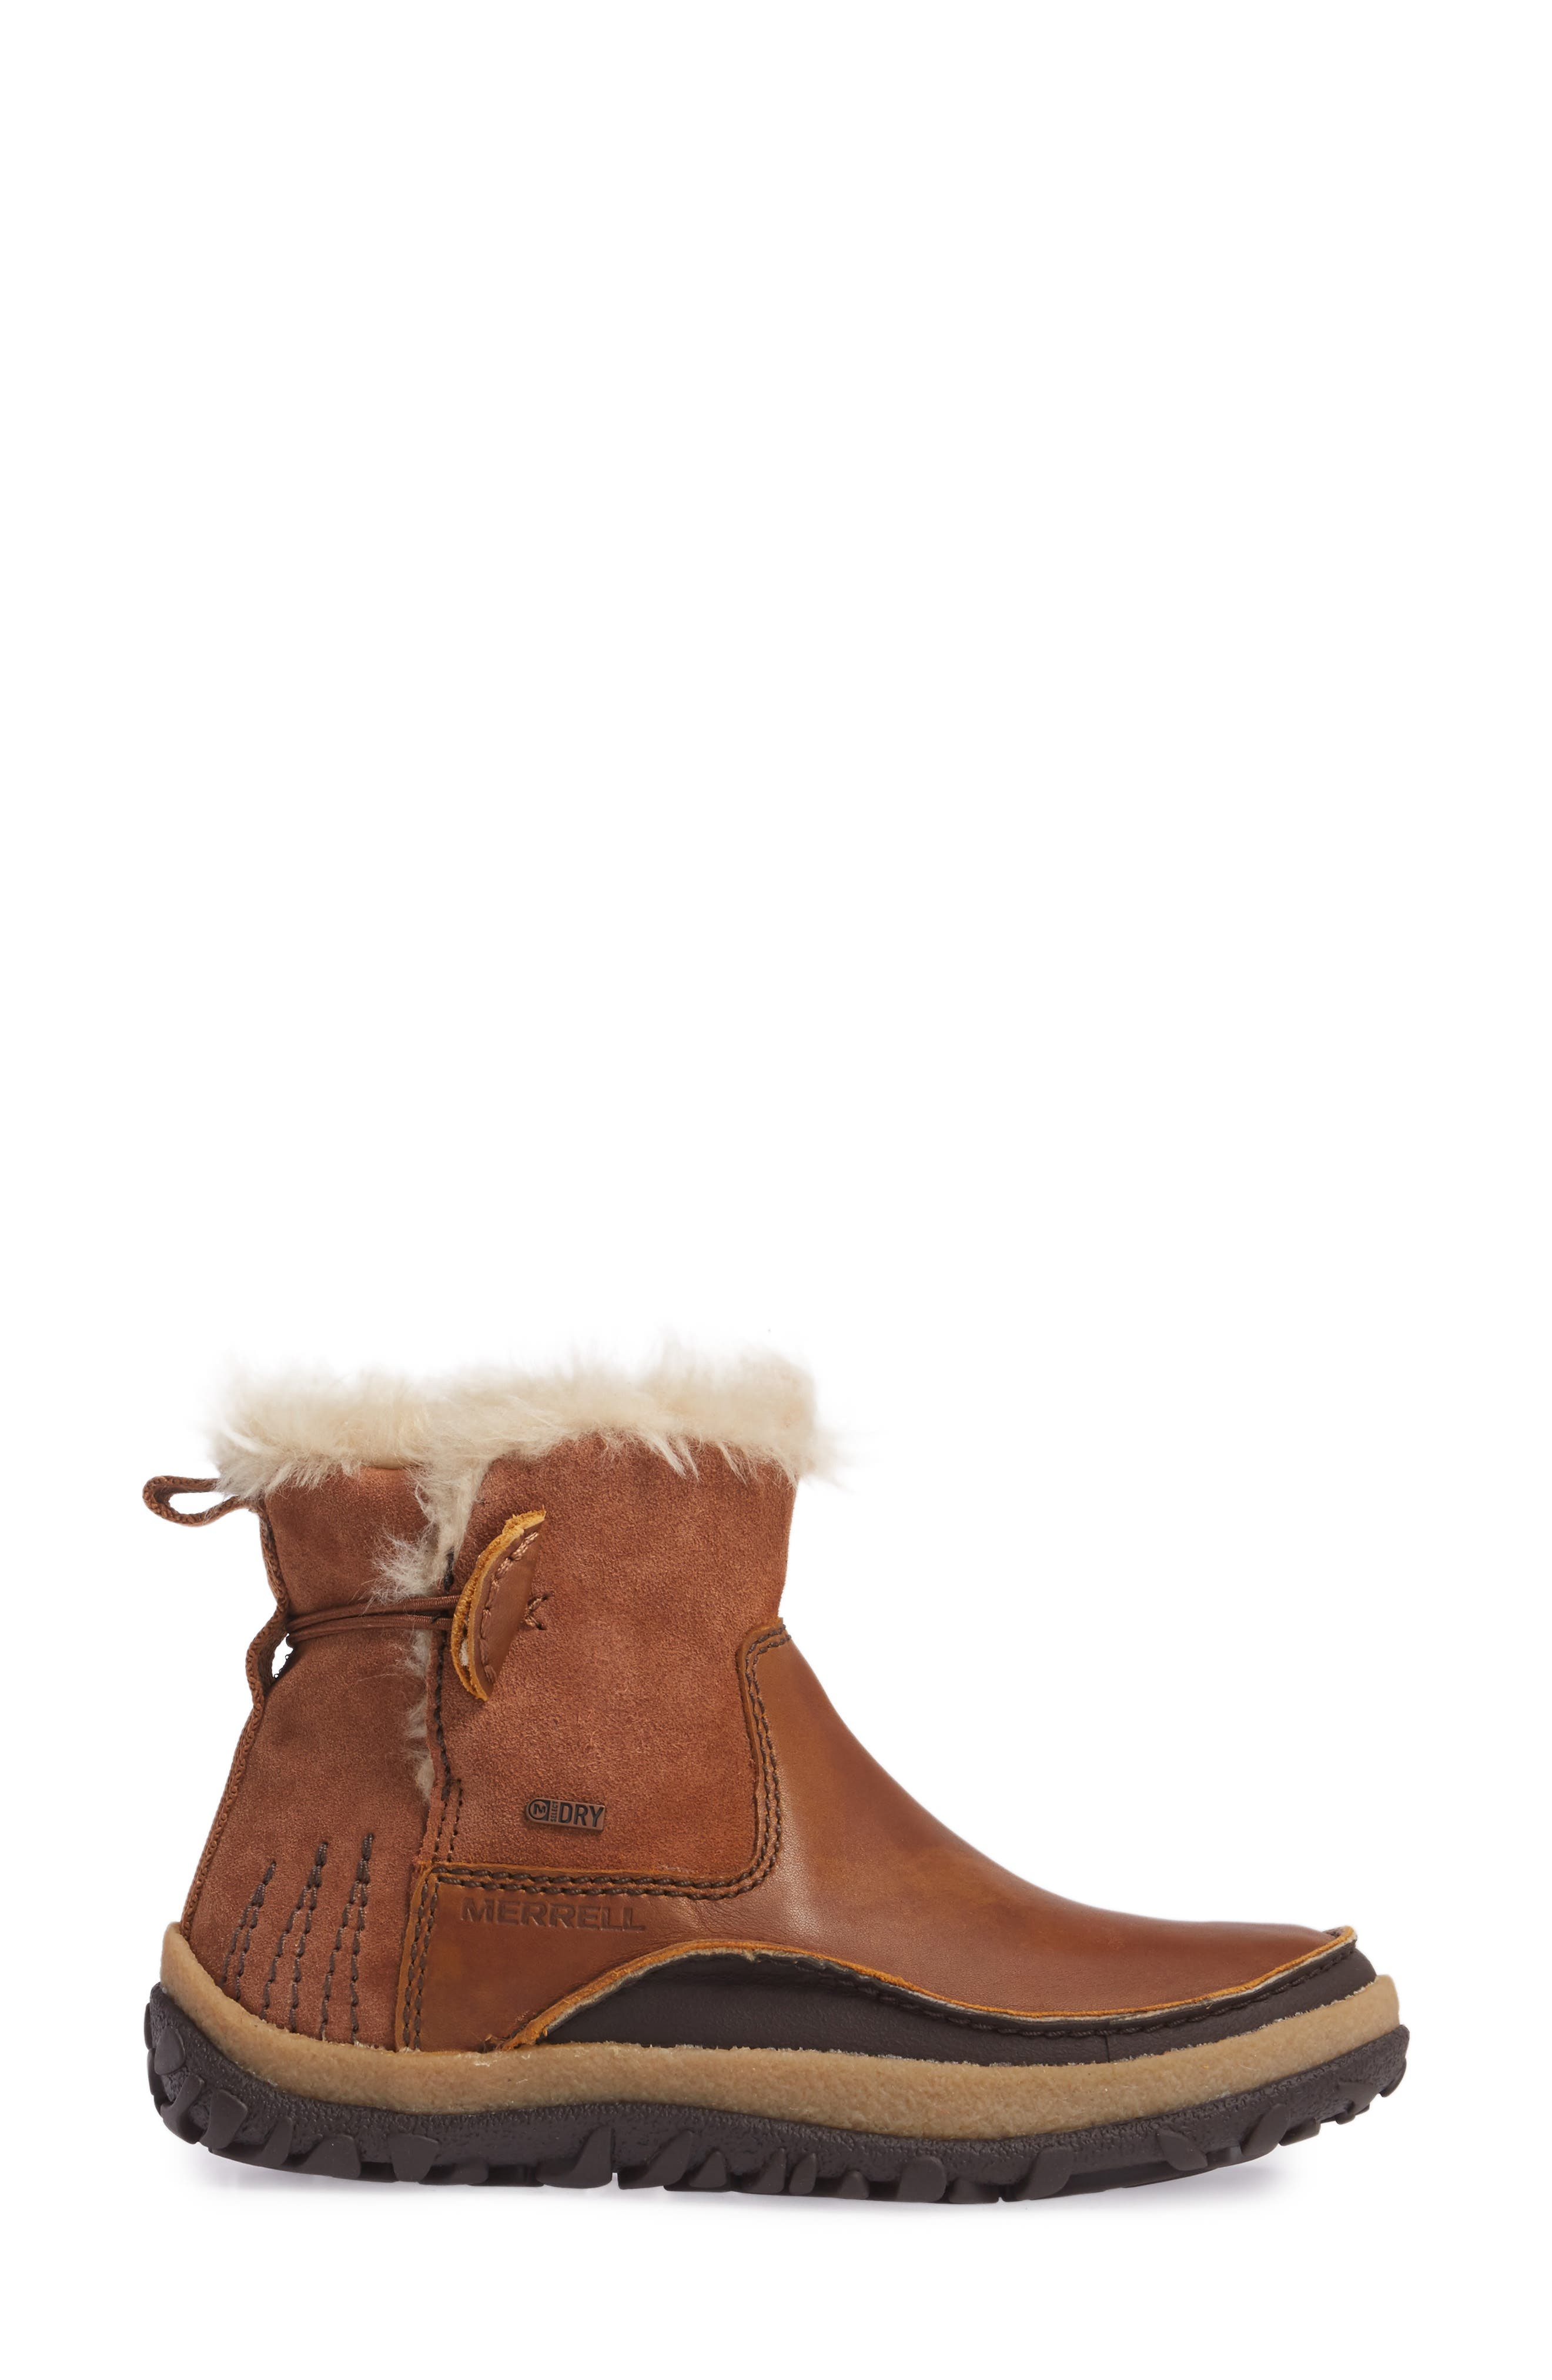 Tremblant Pull-On Polar Waterproof Bootie,                             Alternate thumbnail 10, color,